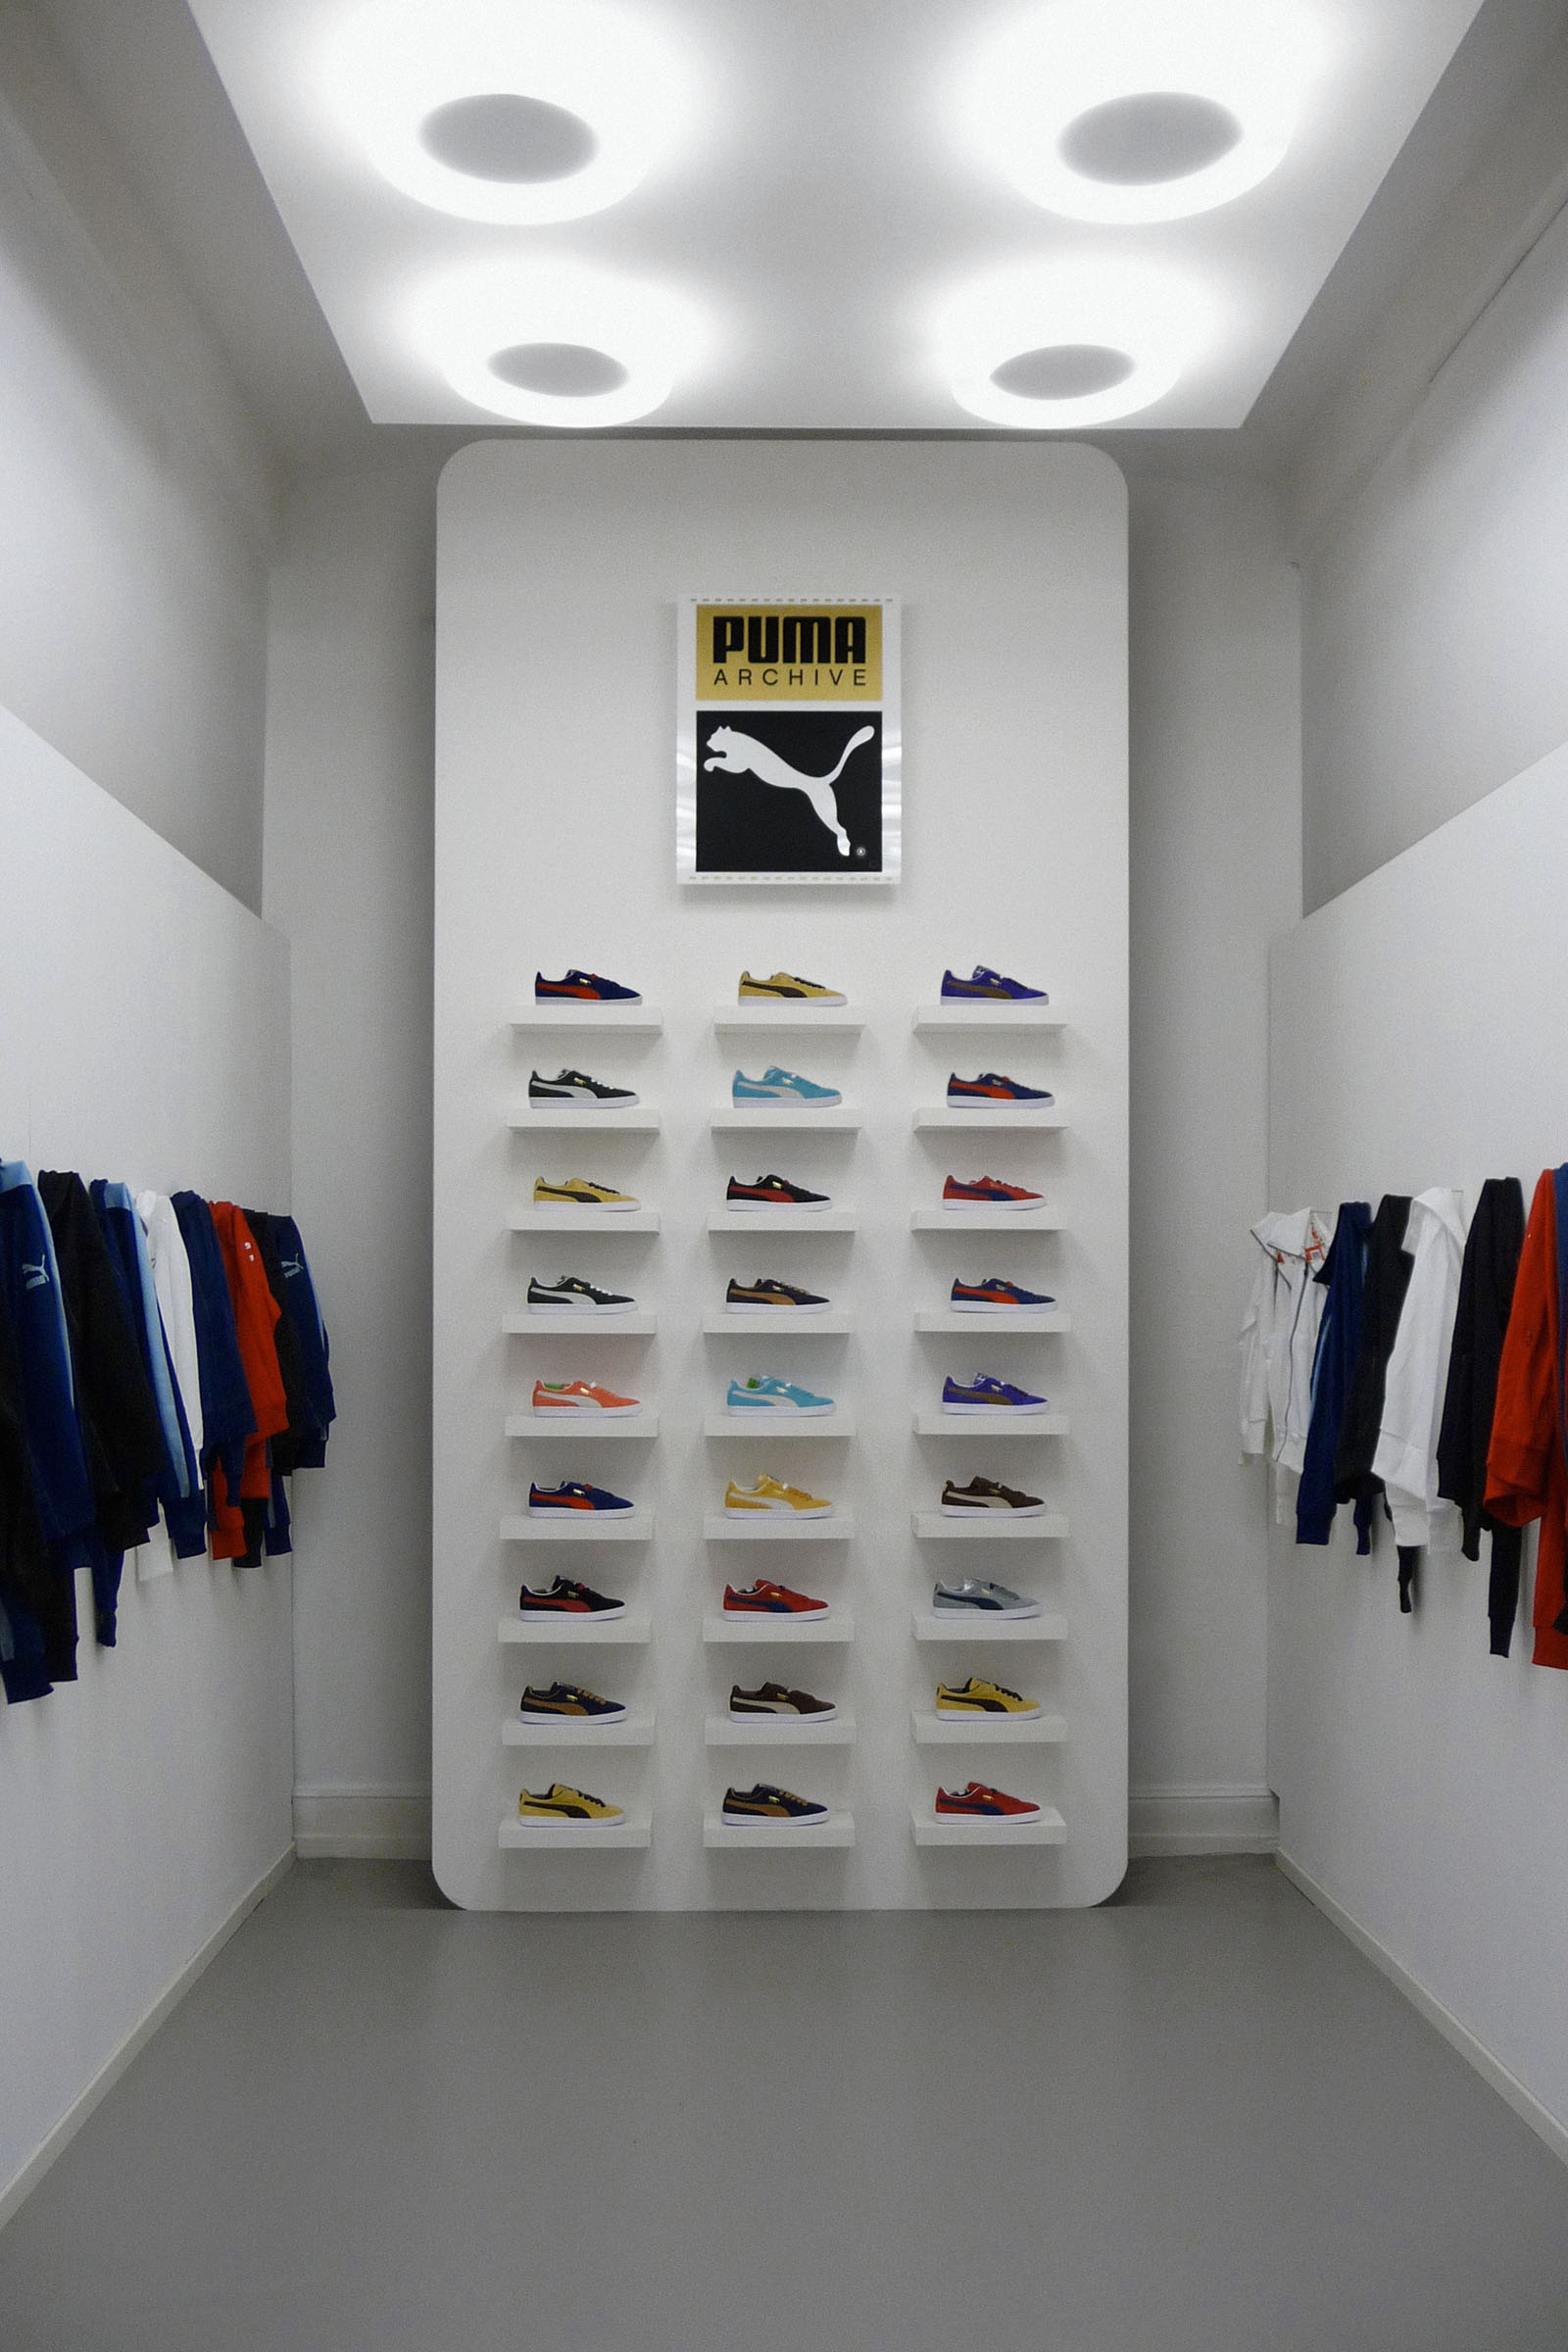 Golden Gate — Brand Communication Design › PUMA — Suede — Booth Design